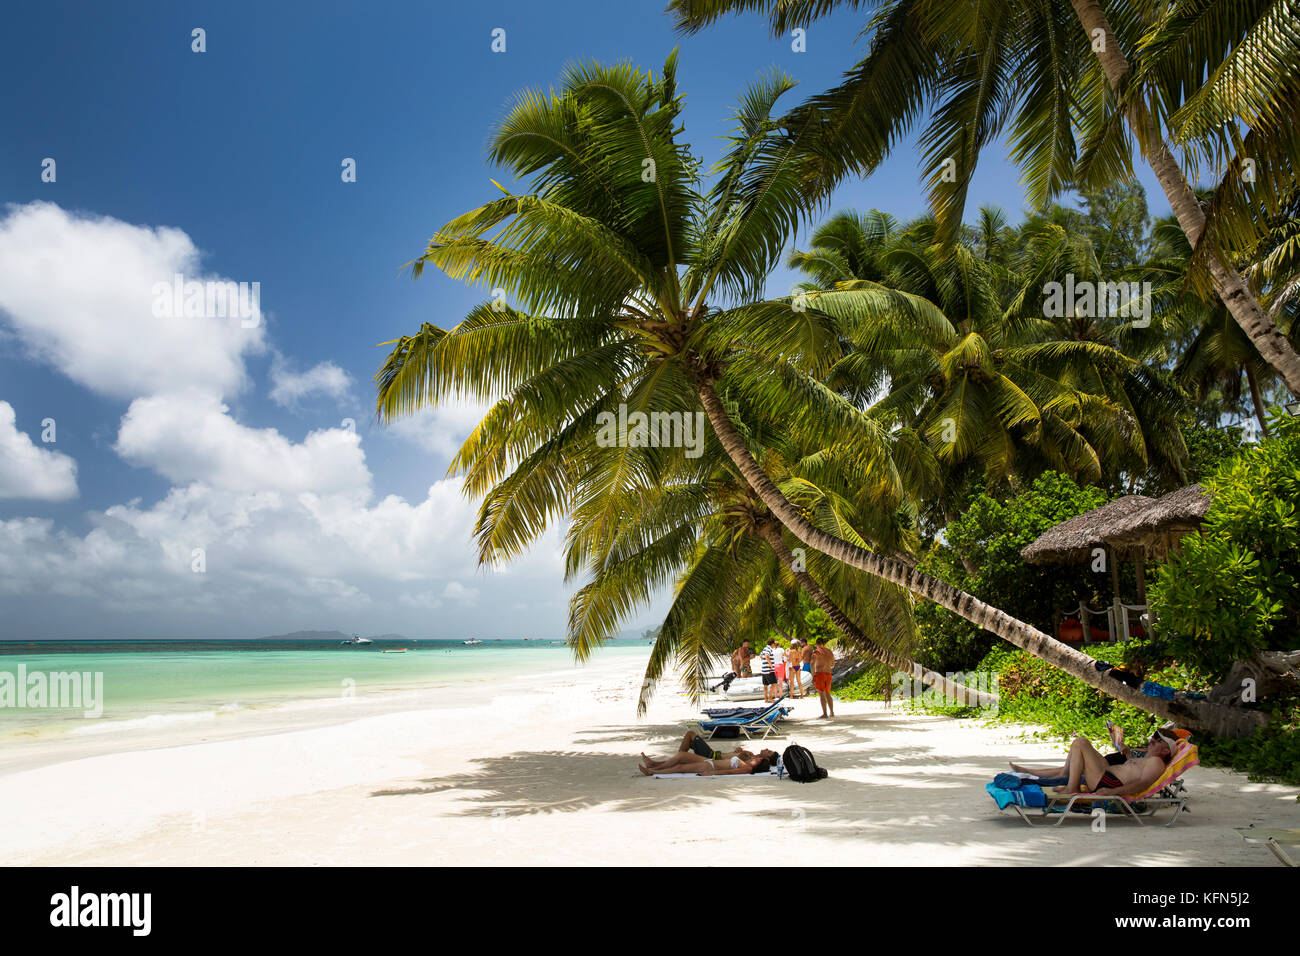 The Seychelles, Praslin, Anse Volbert, beach, tourists sunbathing in shade of palm trees - Stock Image